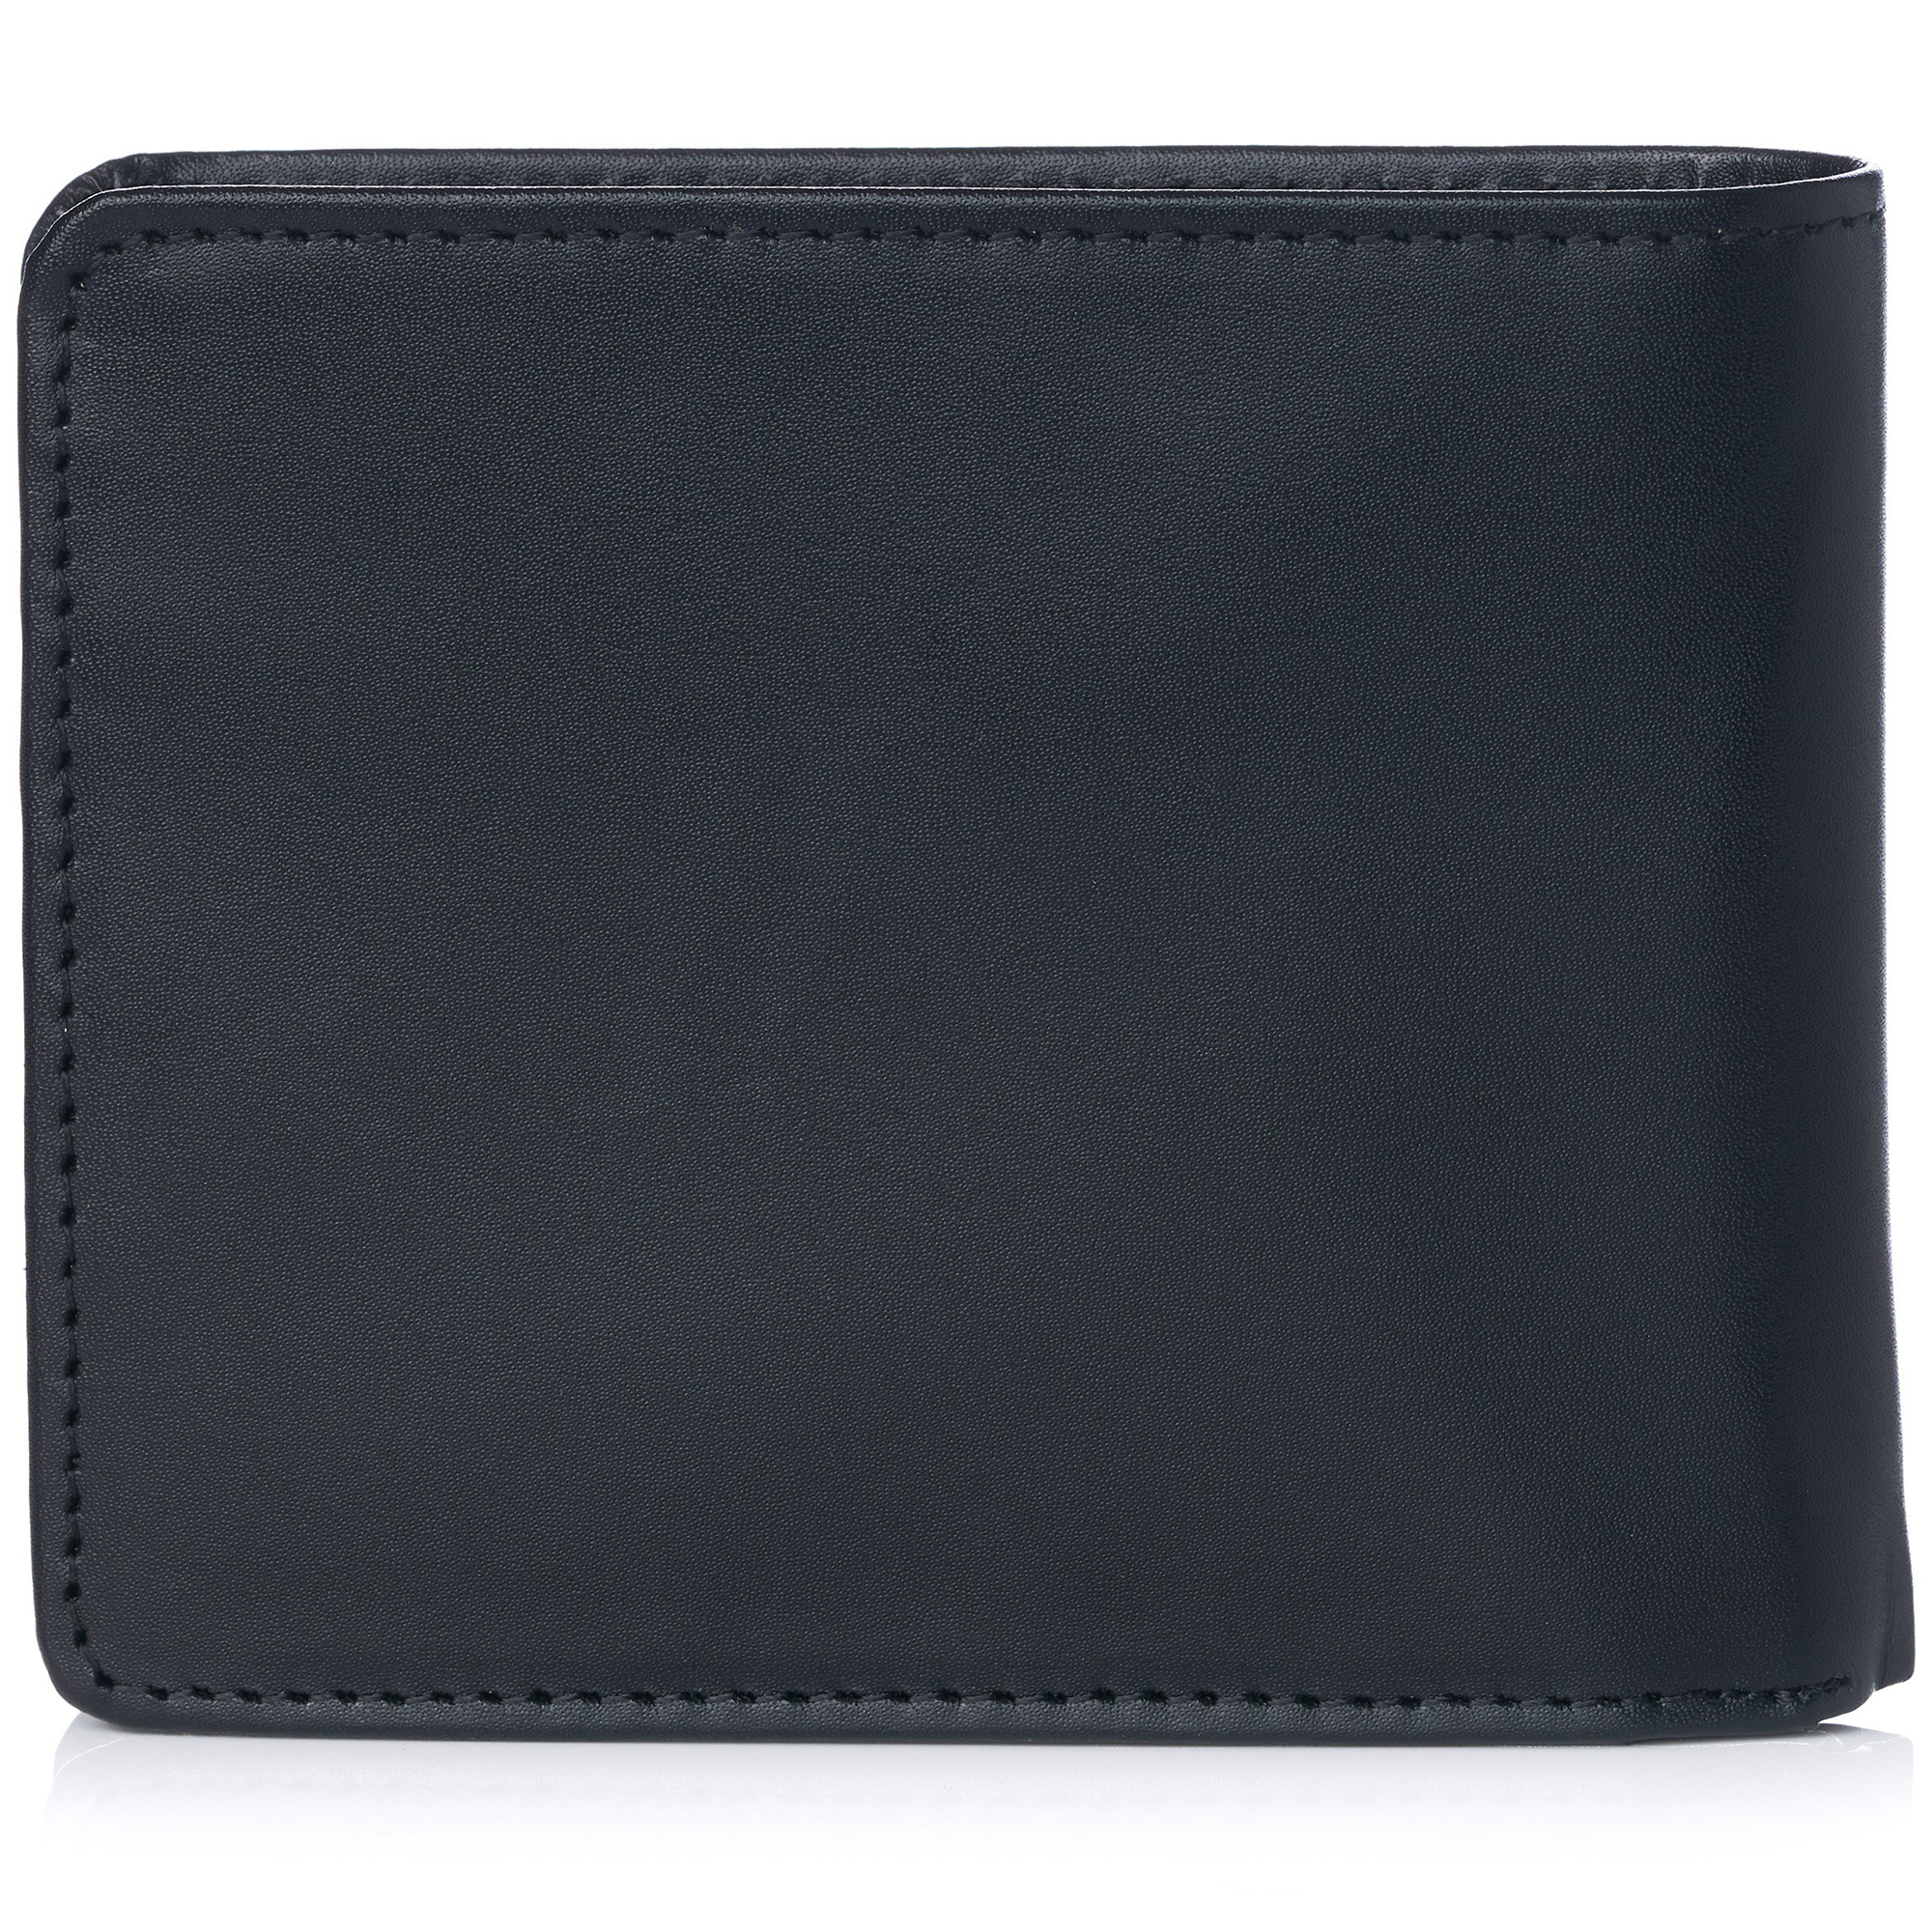 miniature 61 - Alpine-Swiss-RFID-Mens-Wallet-Deluxe-Capacity-Passcase-Bifold-Two-Bill-Sections